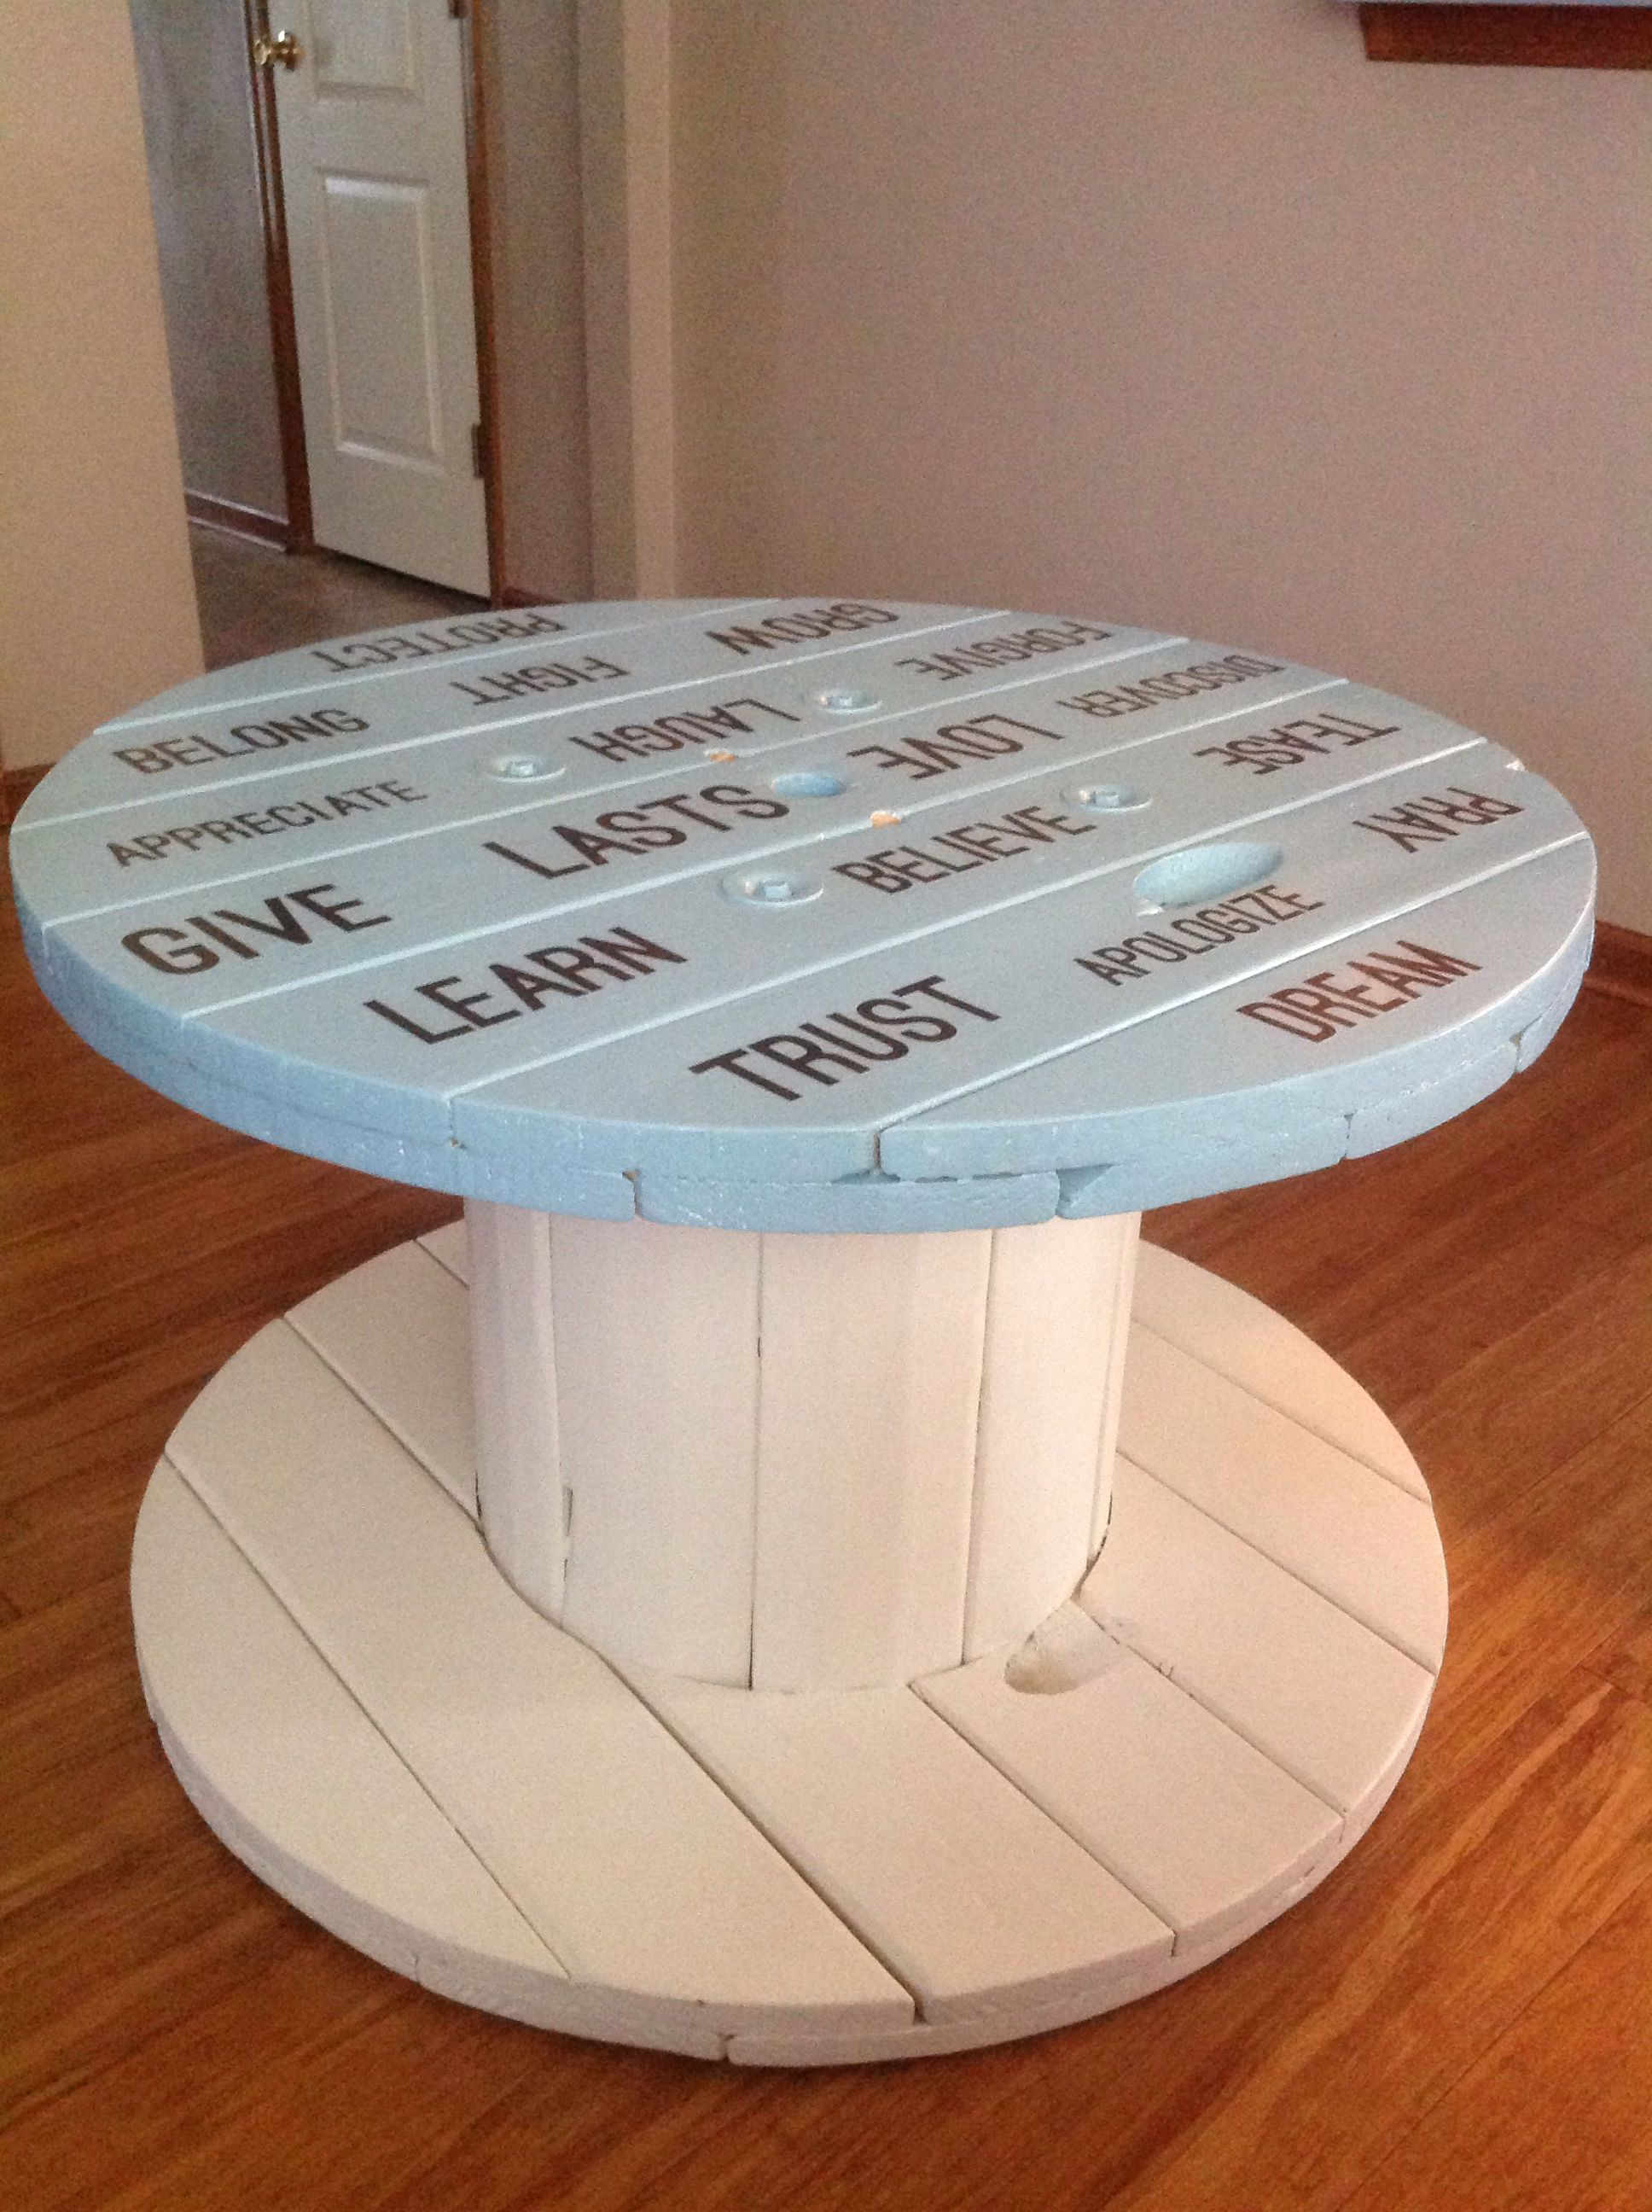 My spool table project. #cablespooltables